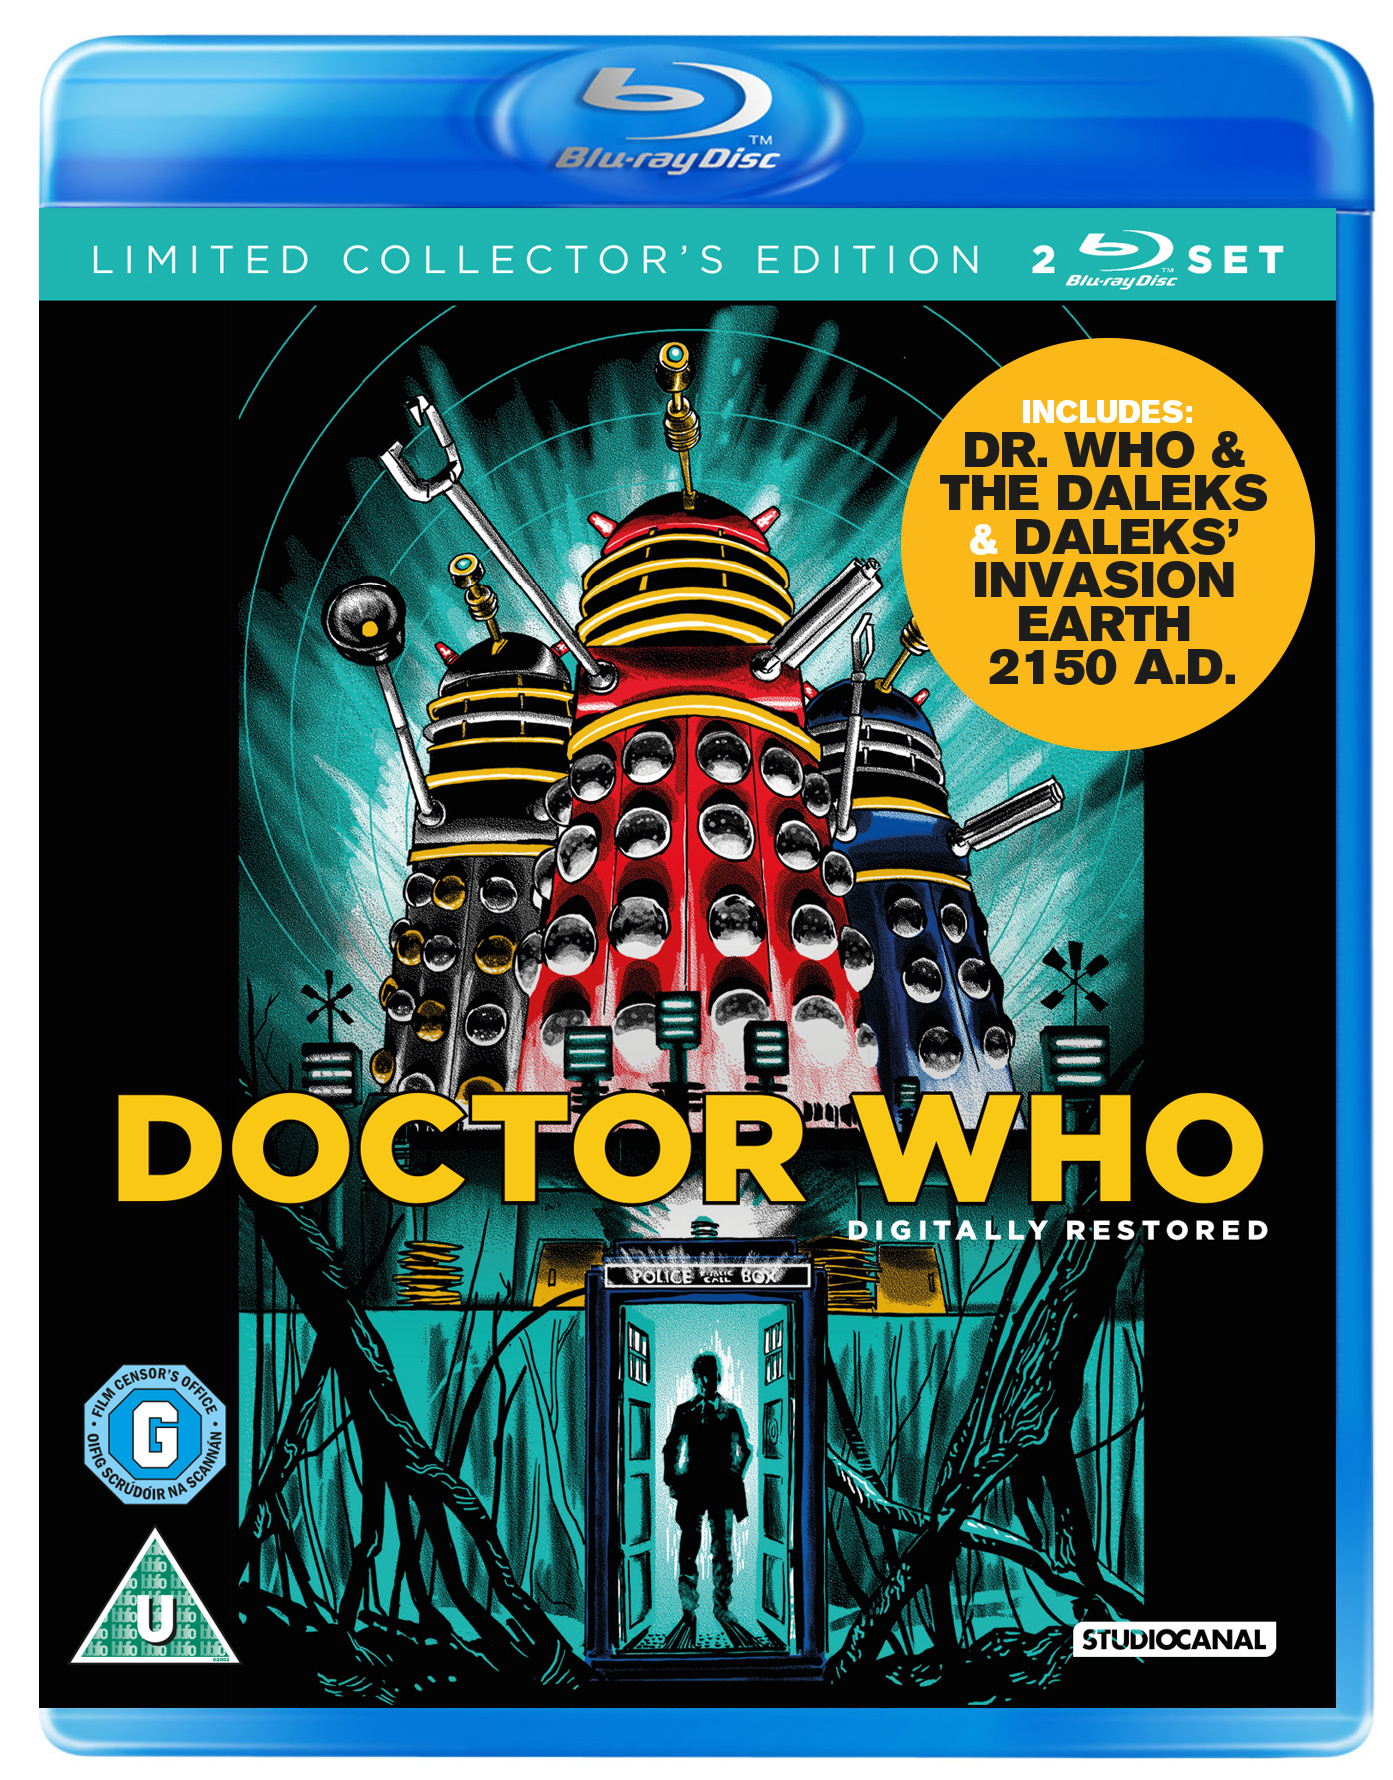 Dalek Movie DVDs